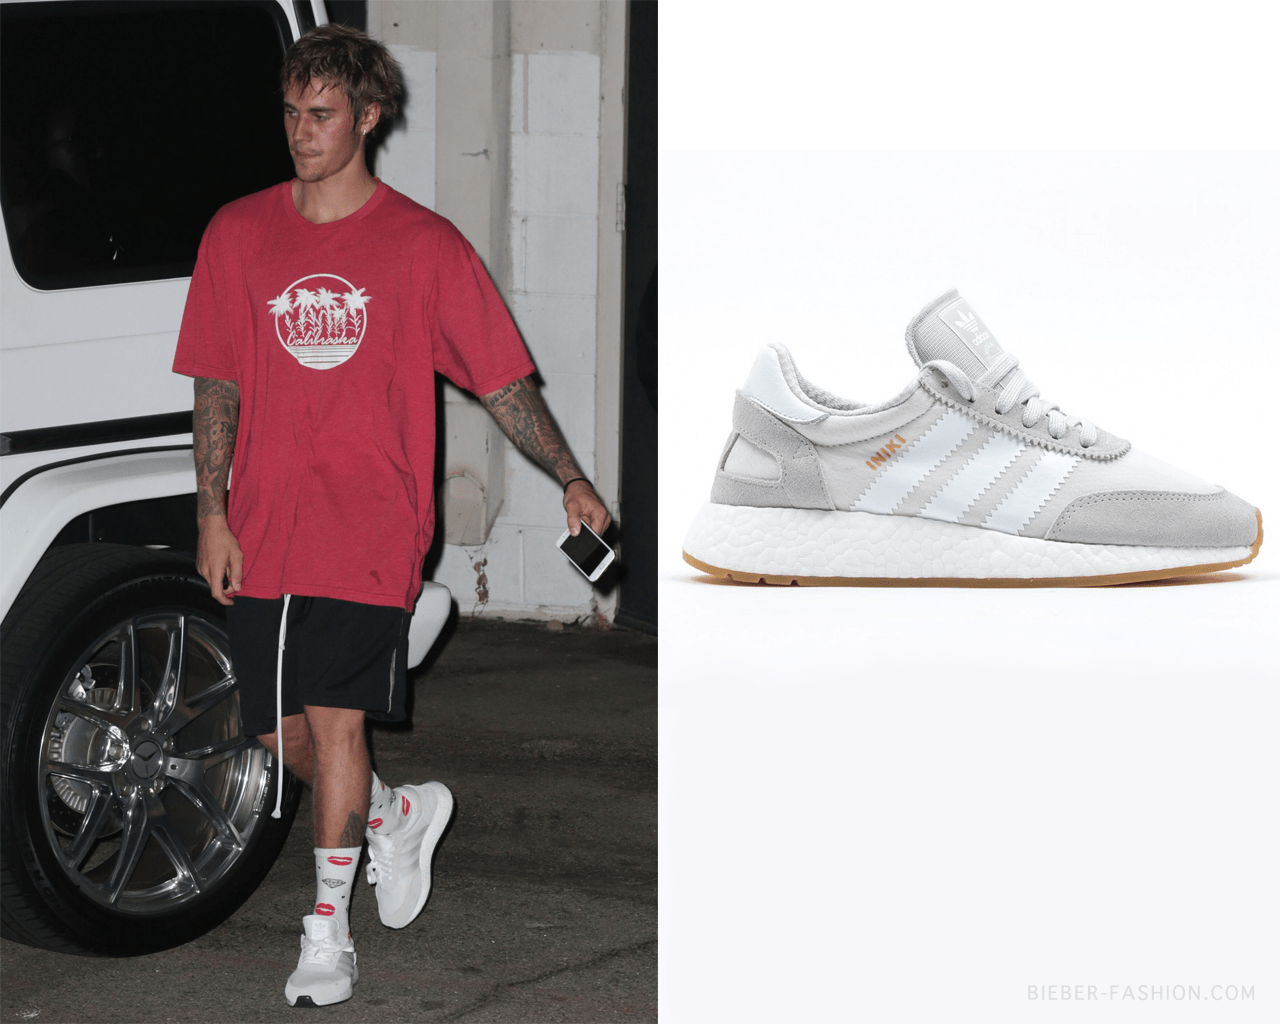 Bieber Fashion Adidas Originals Iniki Runner Shoes In Footwear Justin Bieber